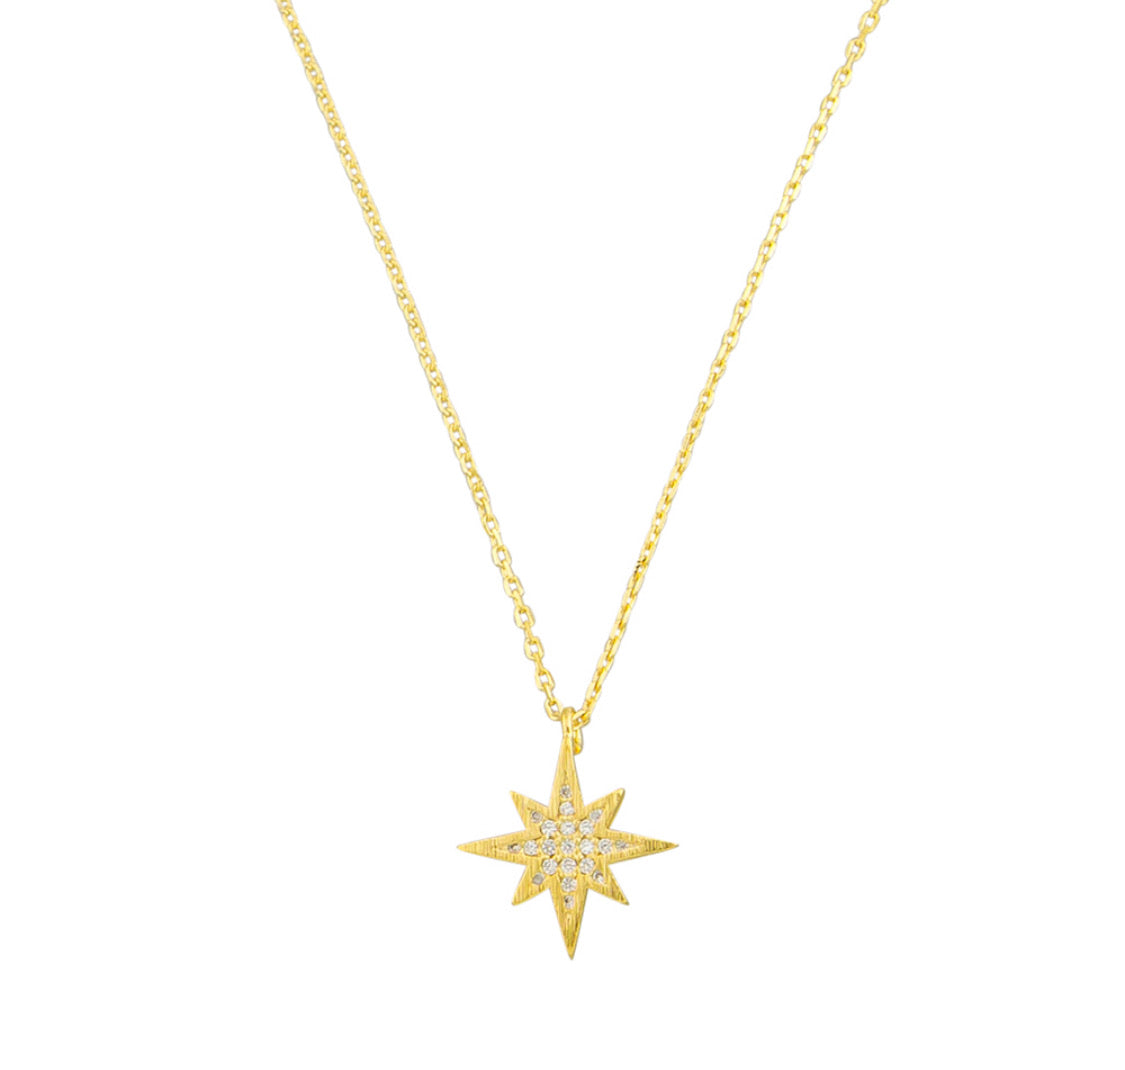 Jolie and Deen Spark necklace